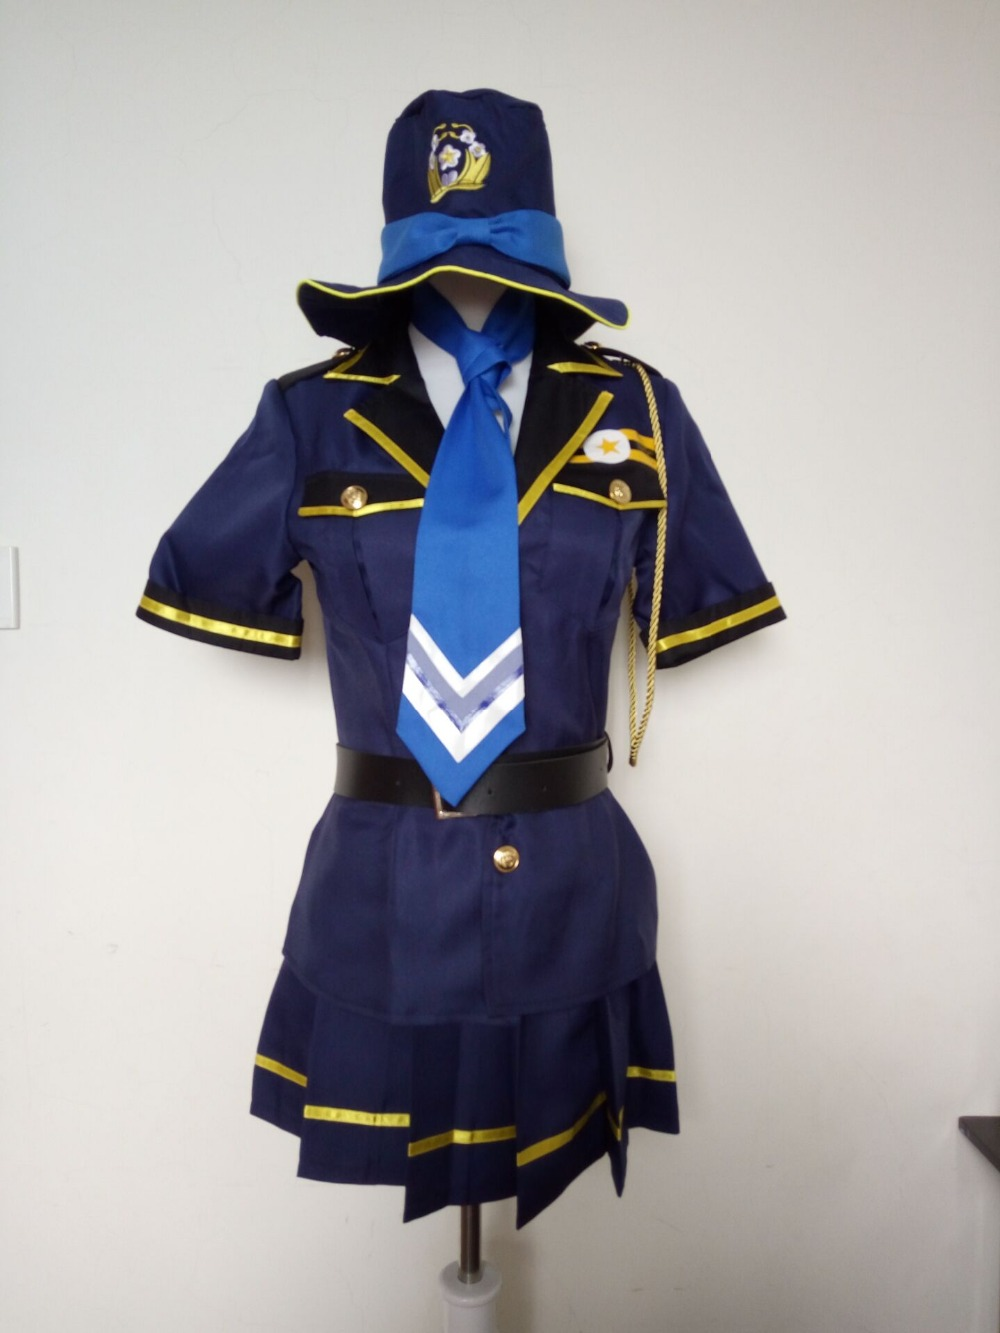 LOVE LIVE! Sonoda Umi Cosplay costume Police uniform ladies police cosplay costumes tops+skirt+belt+hat+badge